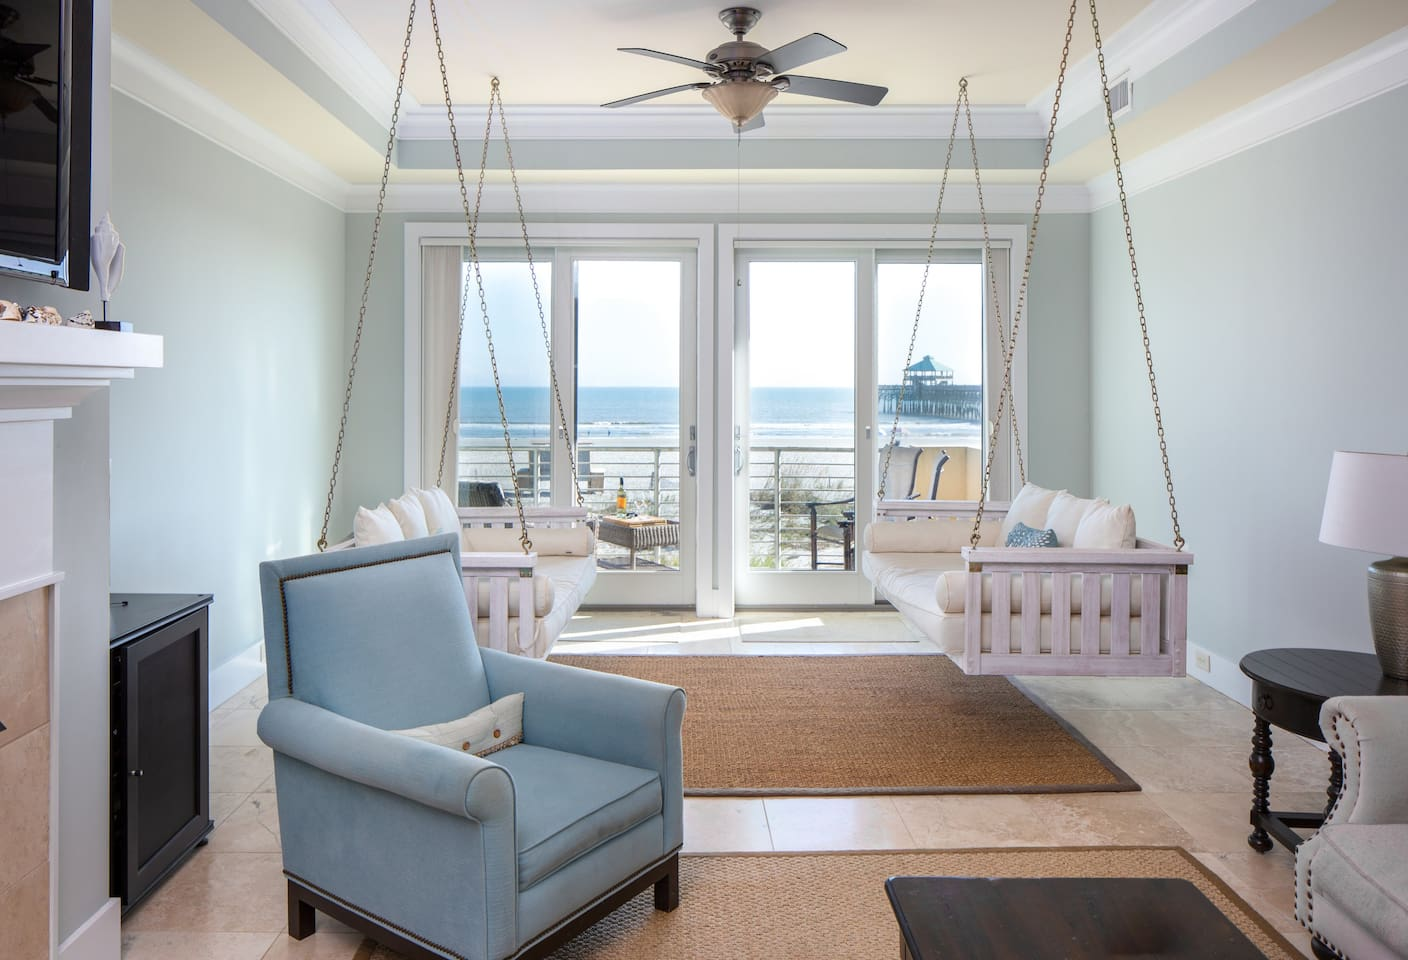 BEACHFRONT Luxury 4 BR/4.5 BA Condo by Pier! - Houses for Rent in ...